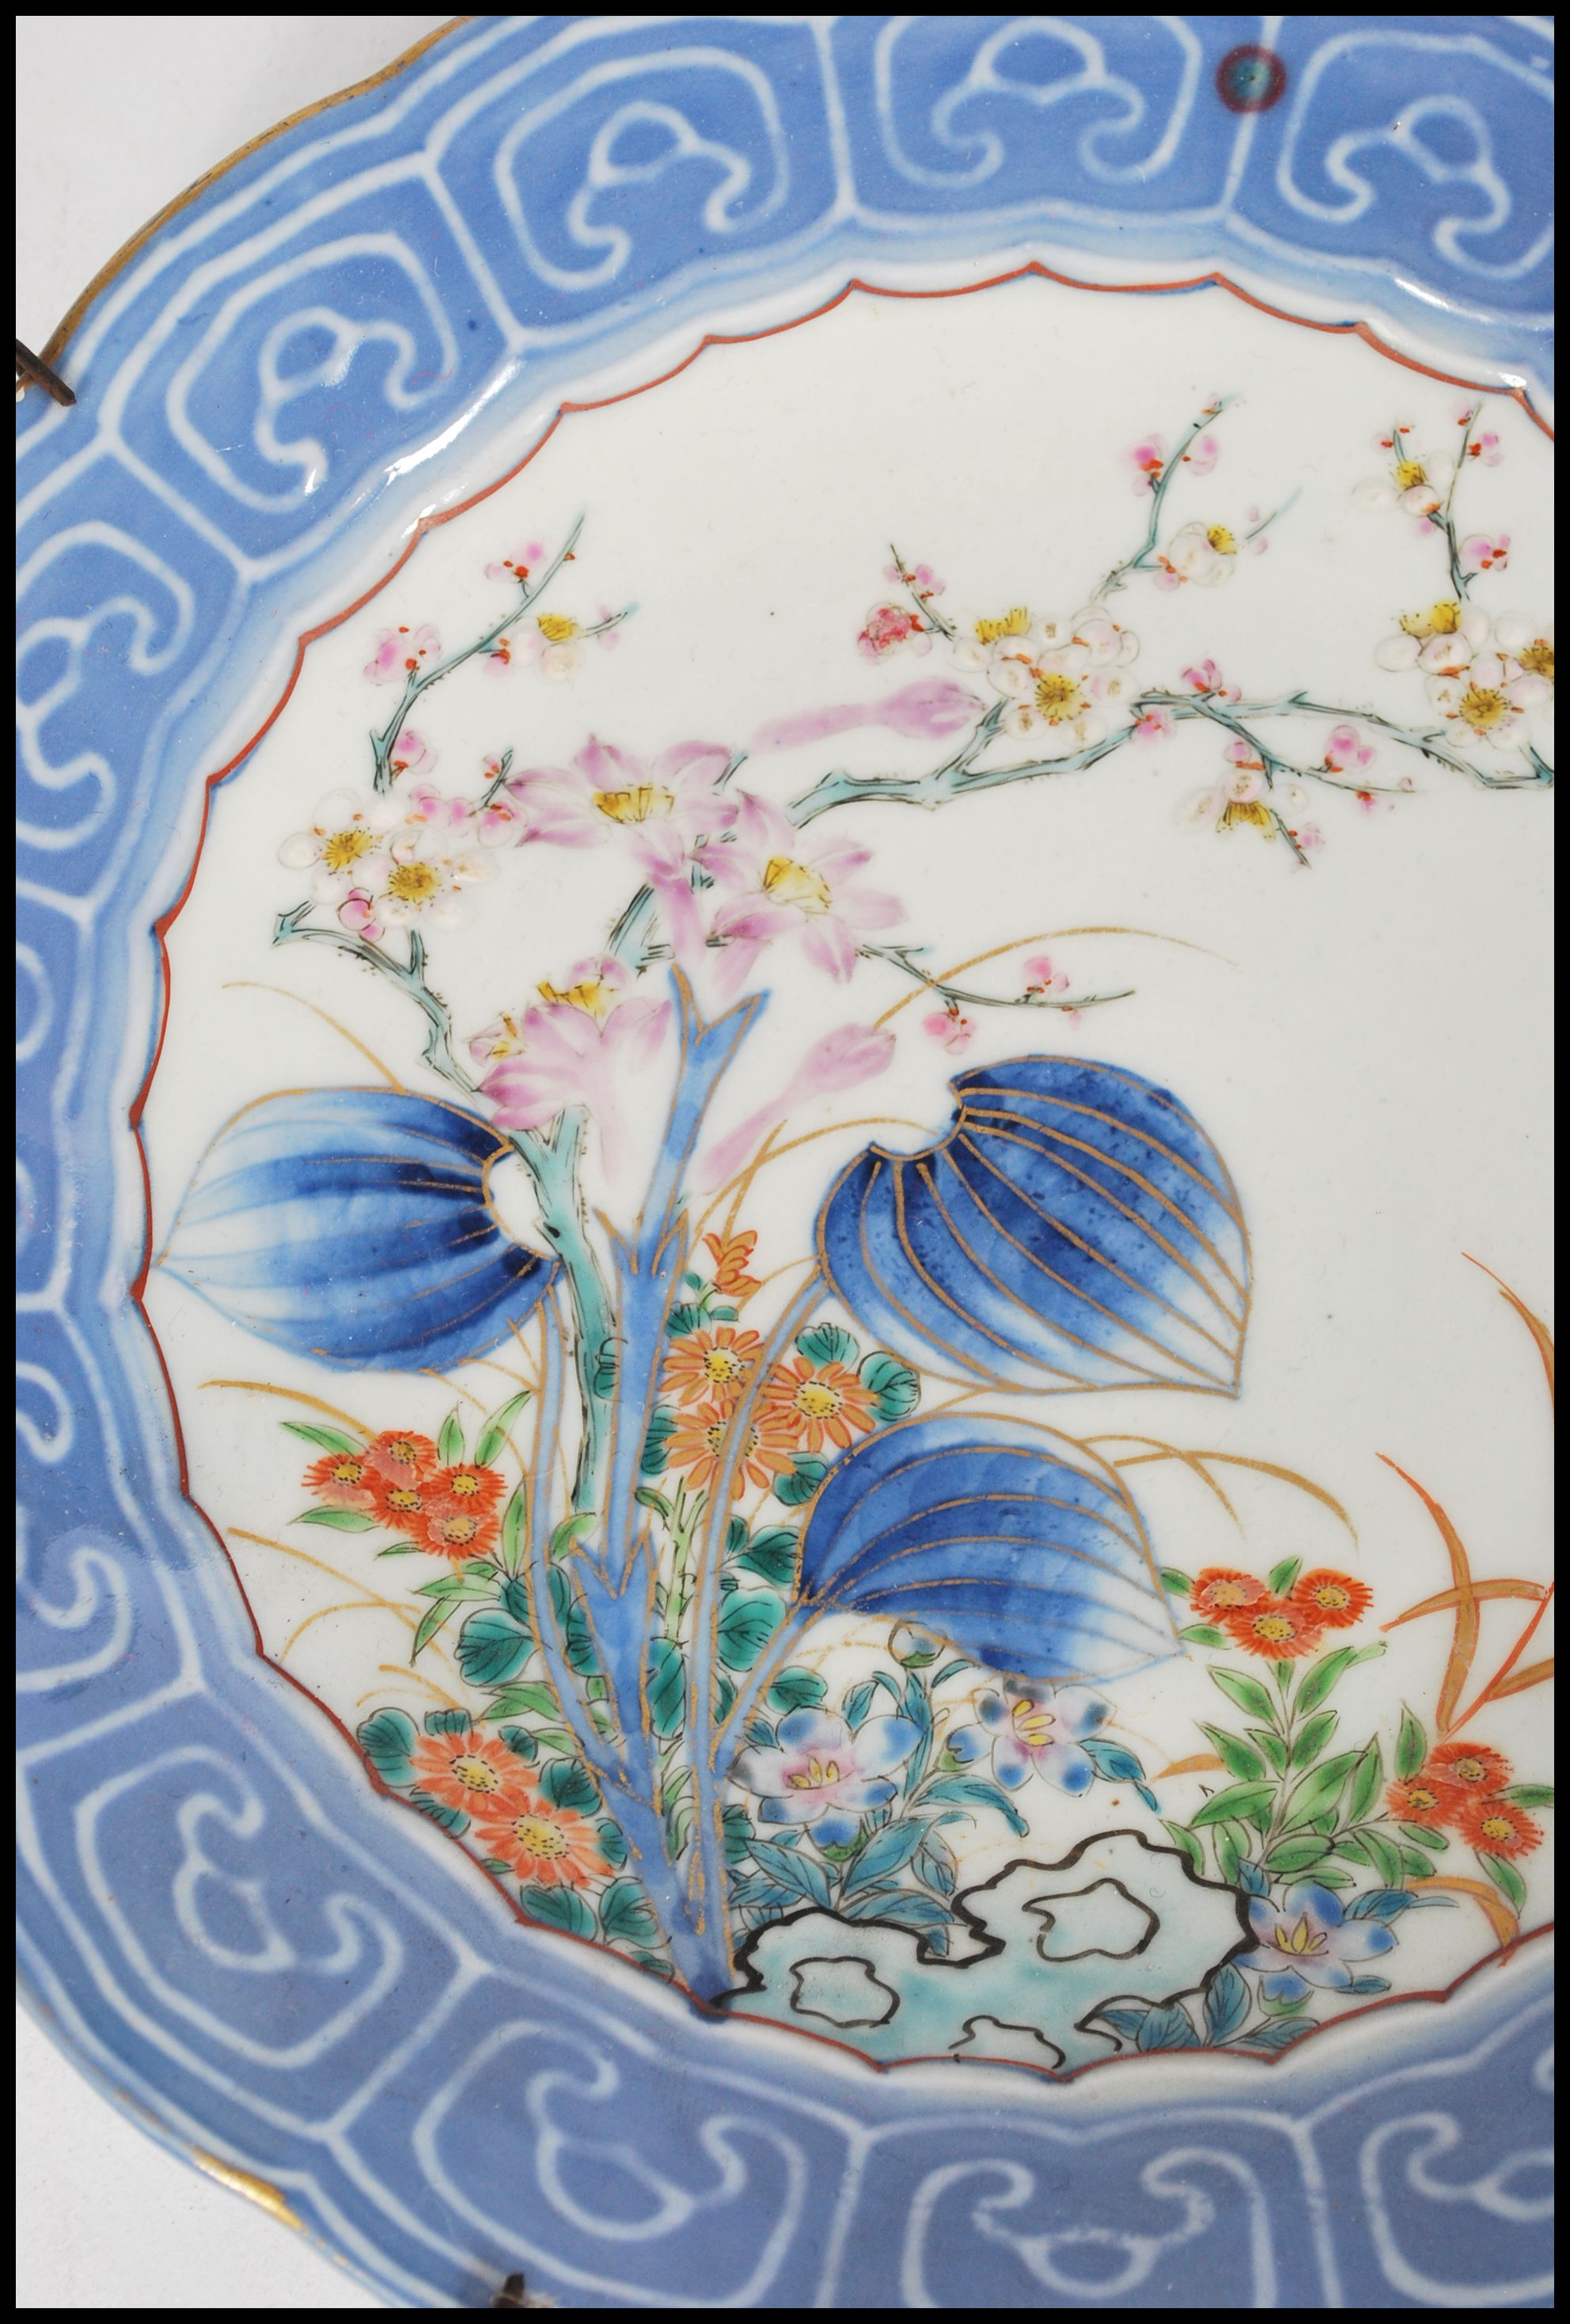 Lot 12 - A late 19th century Chinese blue and white porcelain plate having a large blue and white helmet